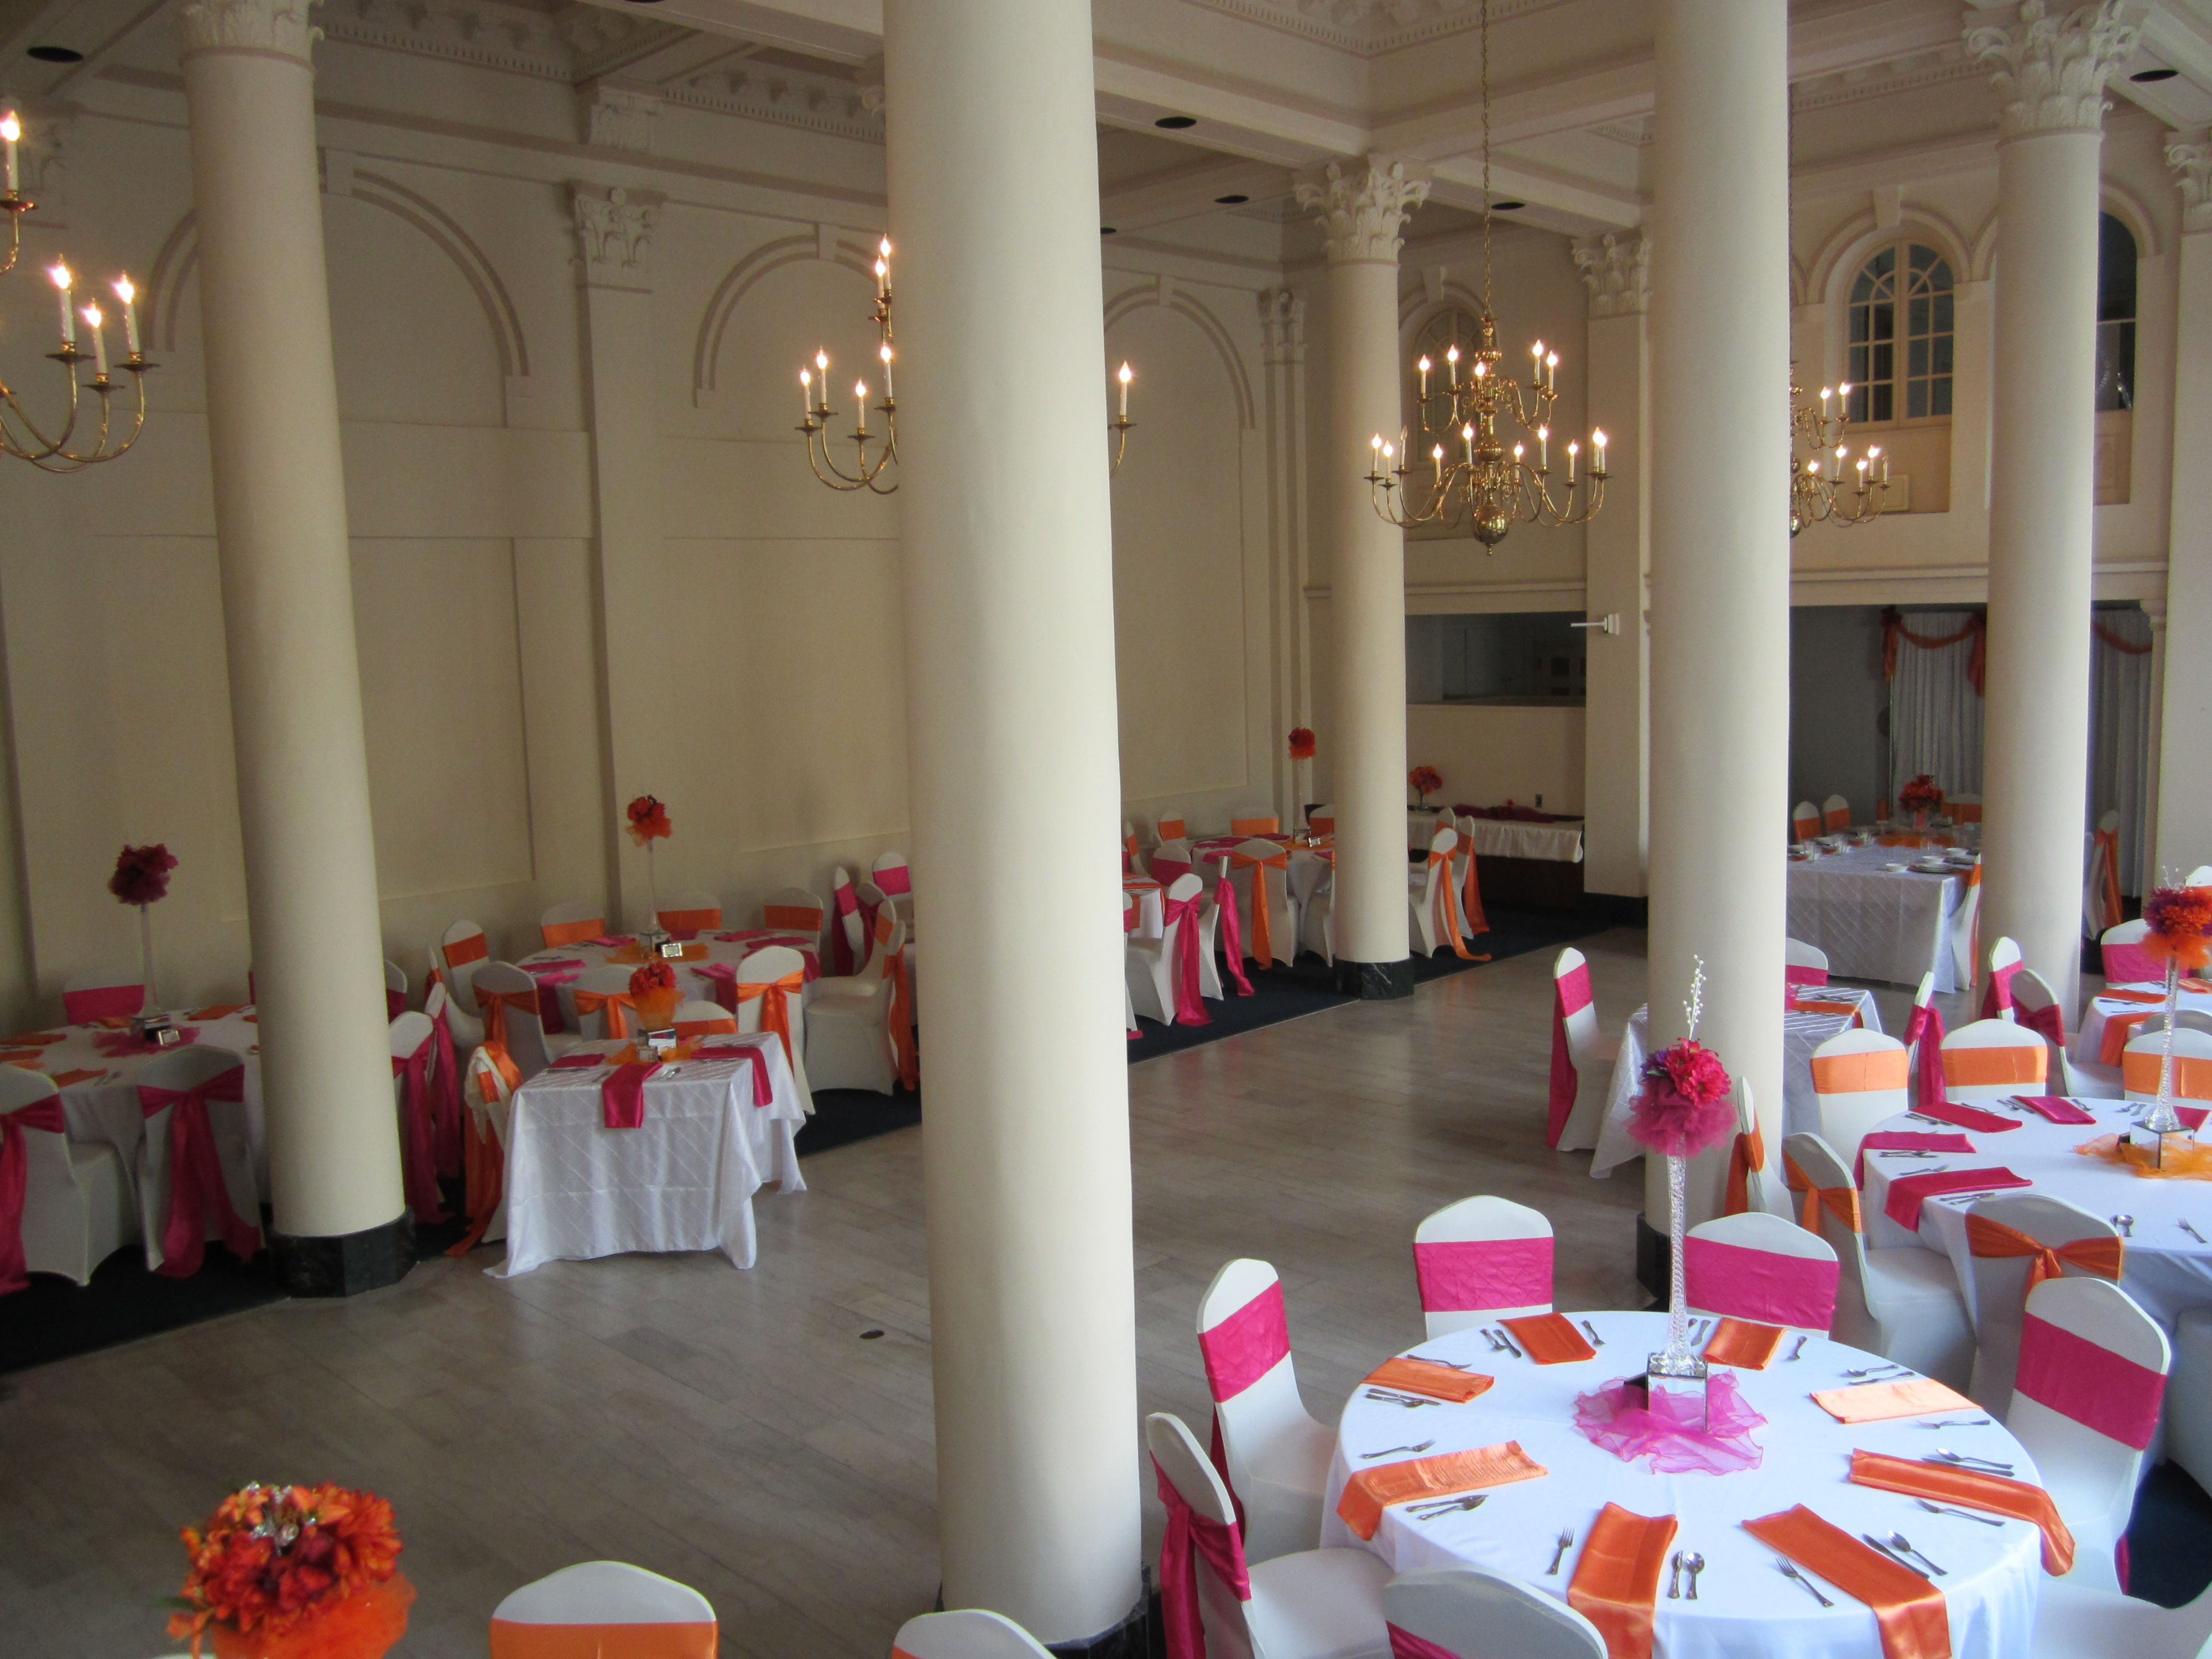 Wedding decorations for hall  Holland wedding reception in the Ballroom Decorations in orange and